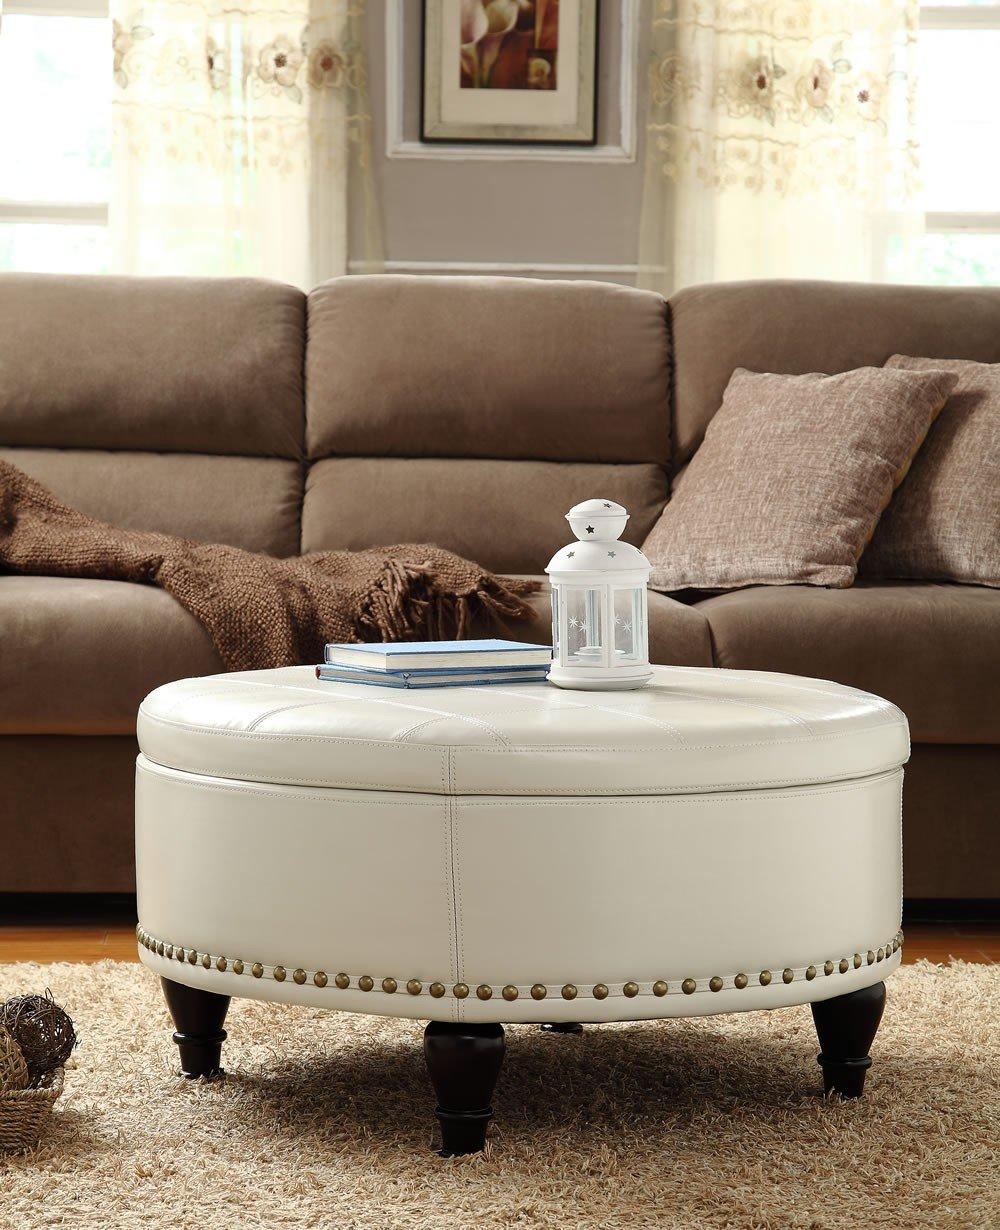 Simple Round Ottoman Coffee Table